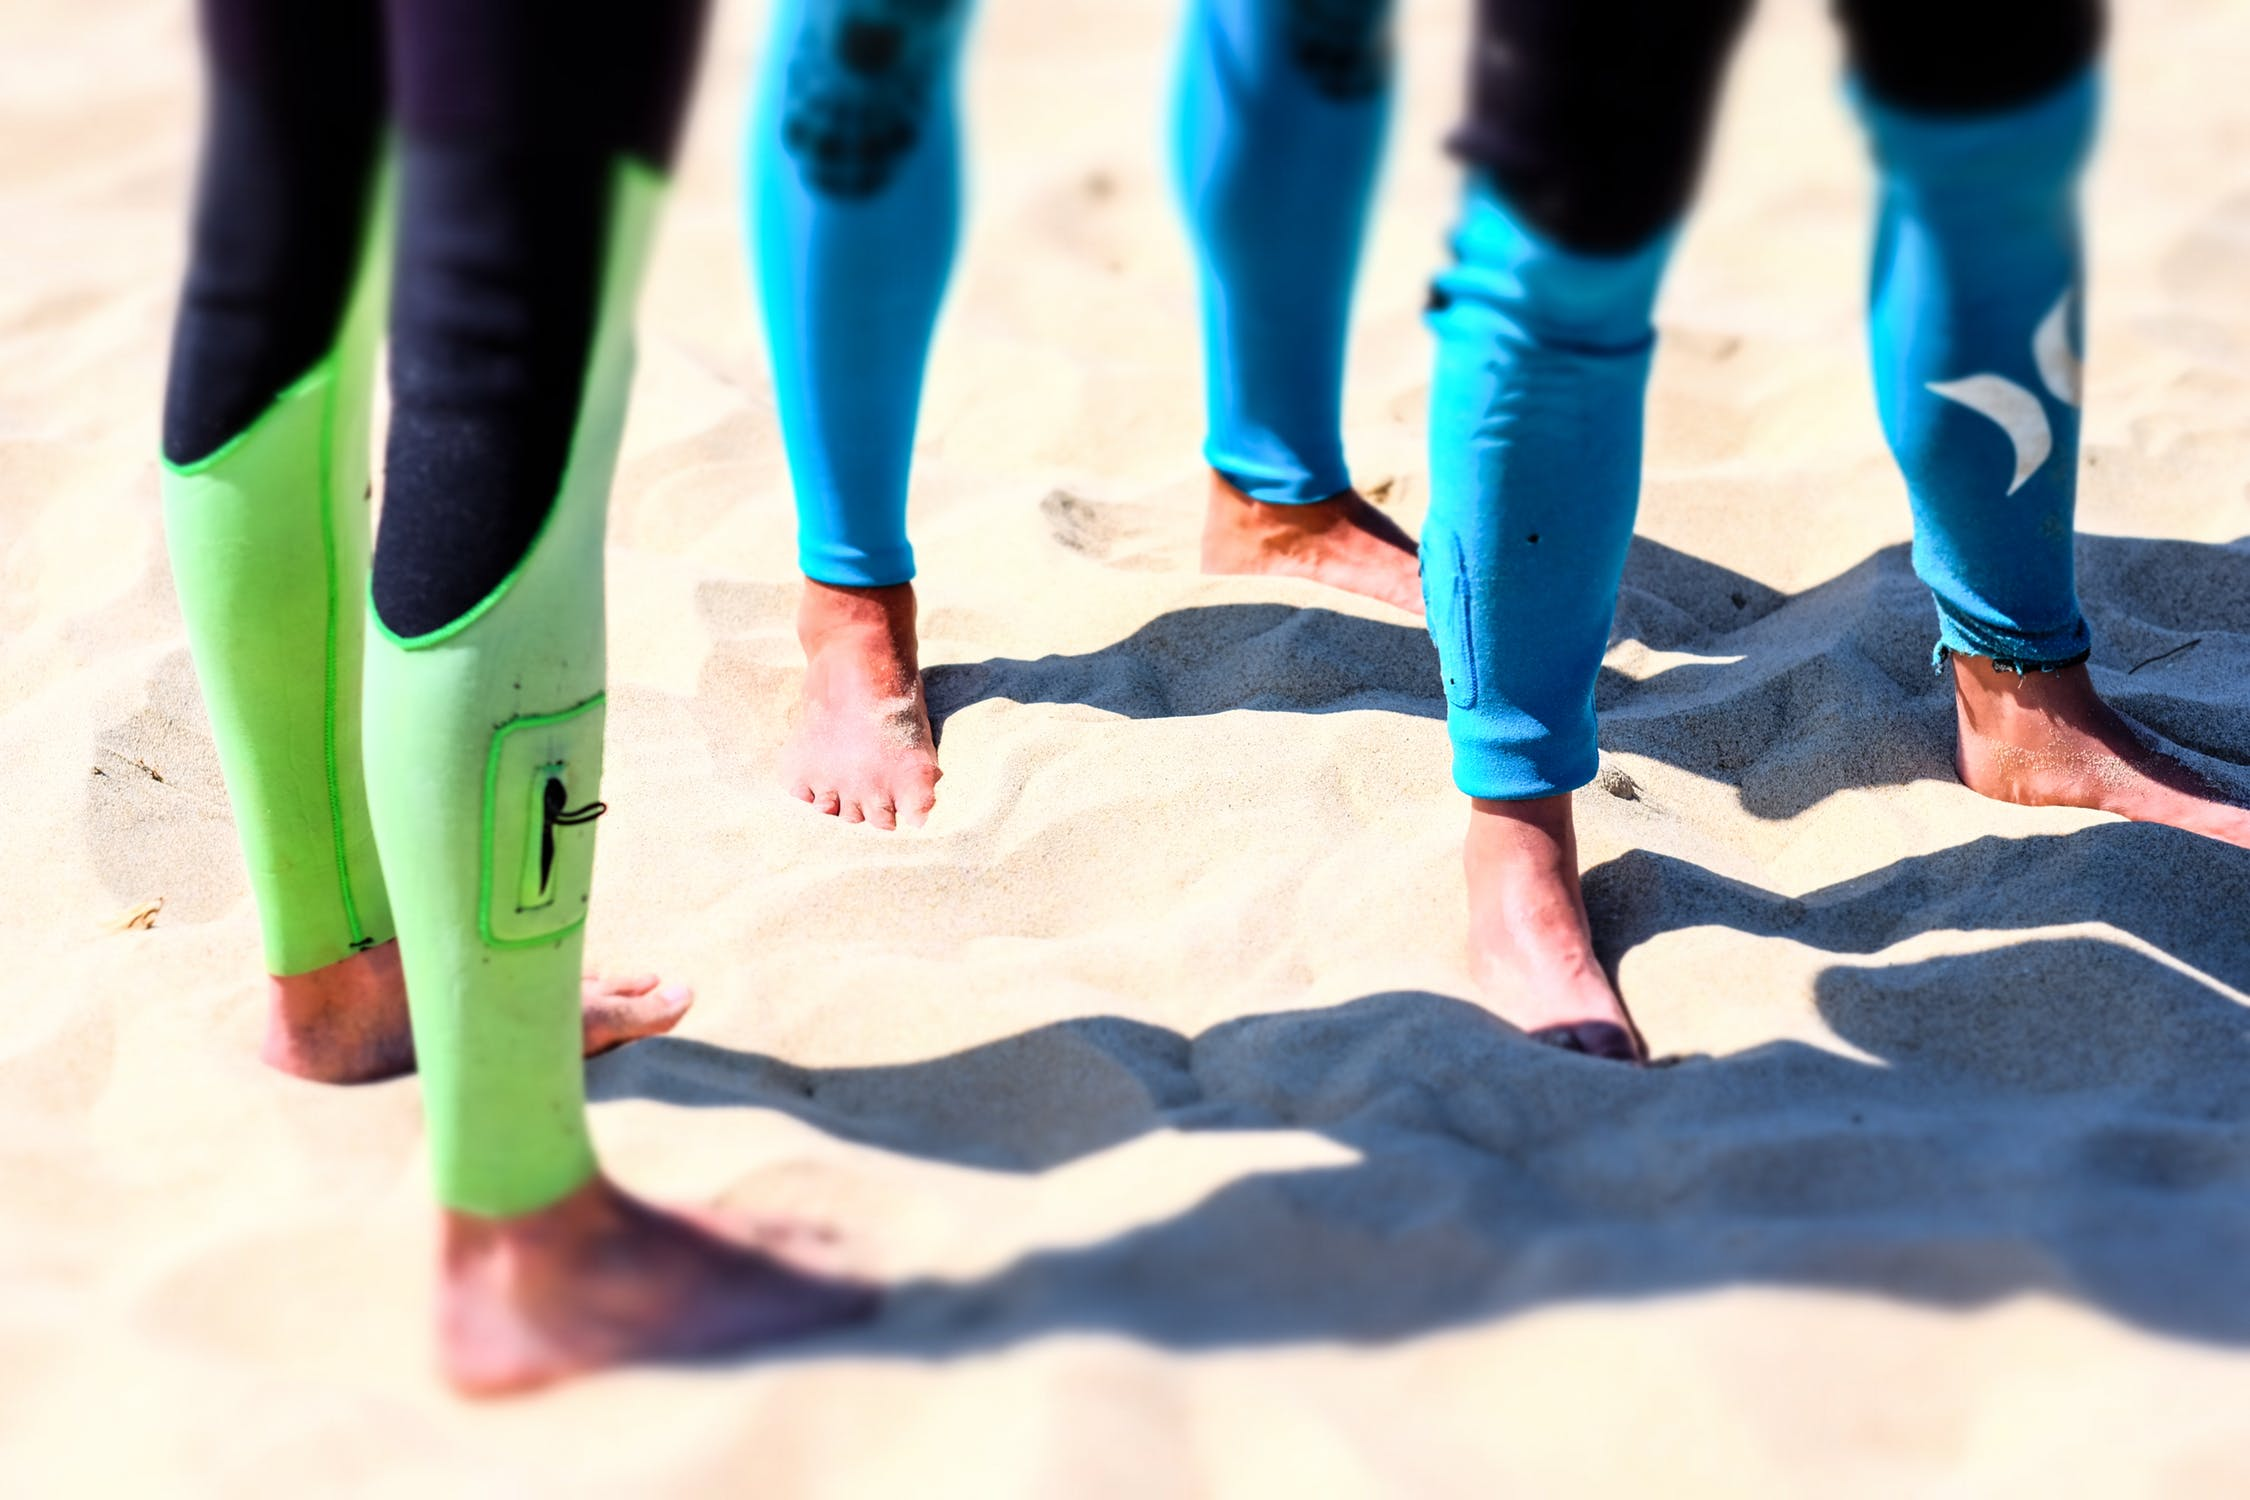 People wearing wetsuits on the beach